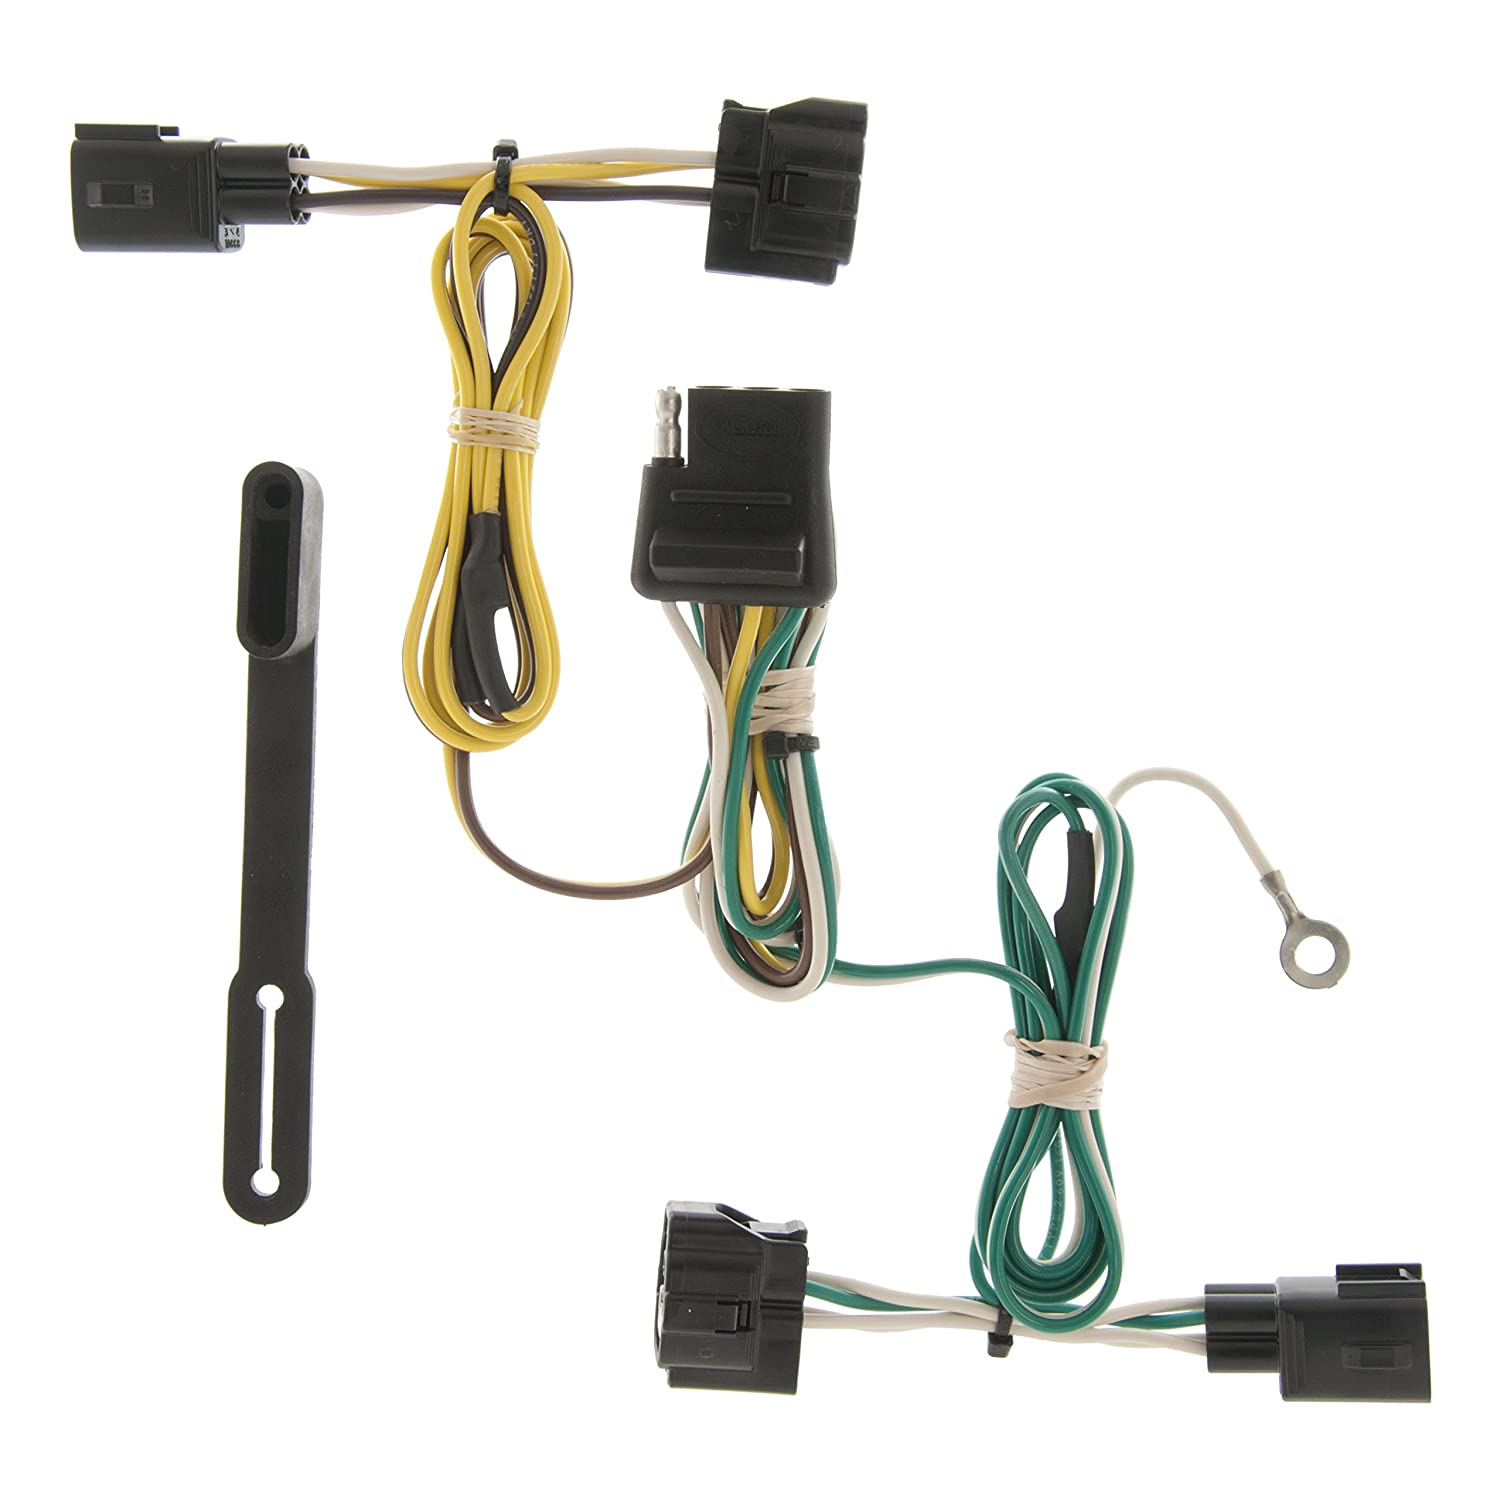 81g2VwpAXML._SL1500_ amazon com curt 55363 custom wiring harness automotive  at webbmarketing.co